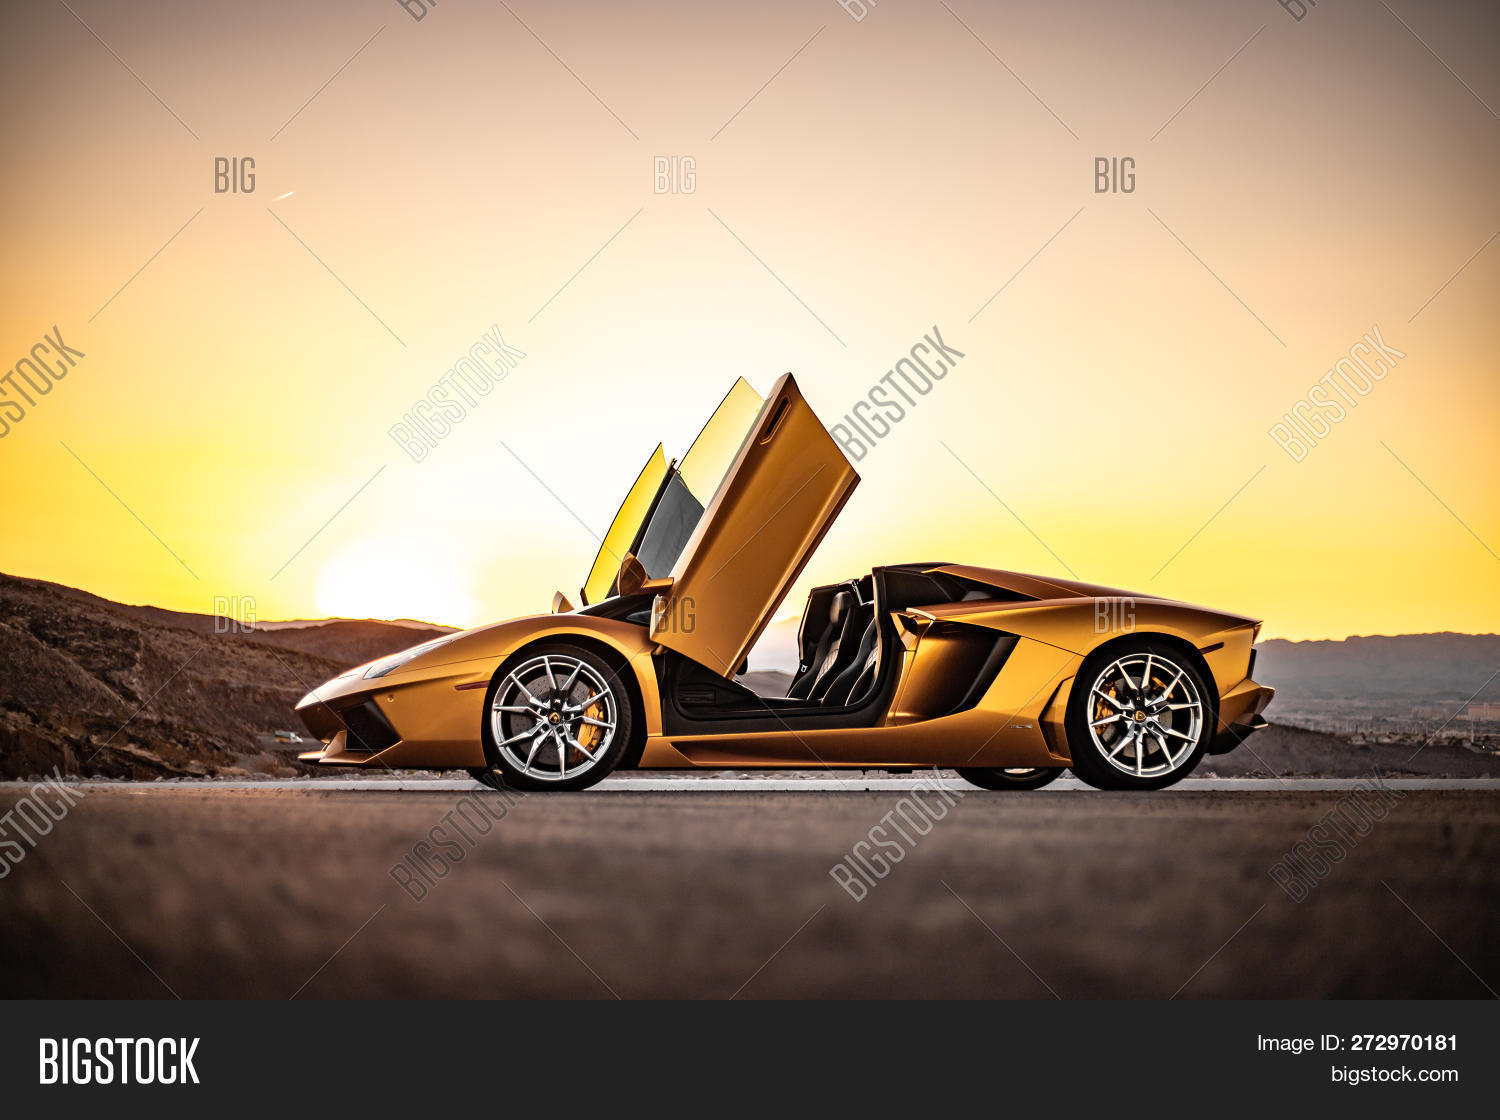 Gold Lamborghini Image Photo Free Trial Bigstock